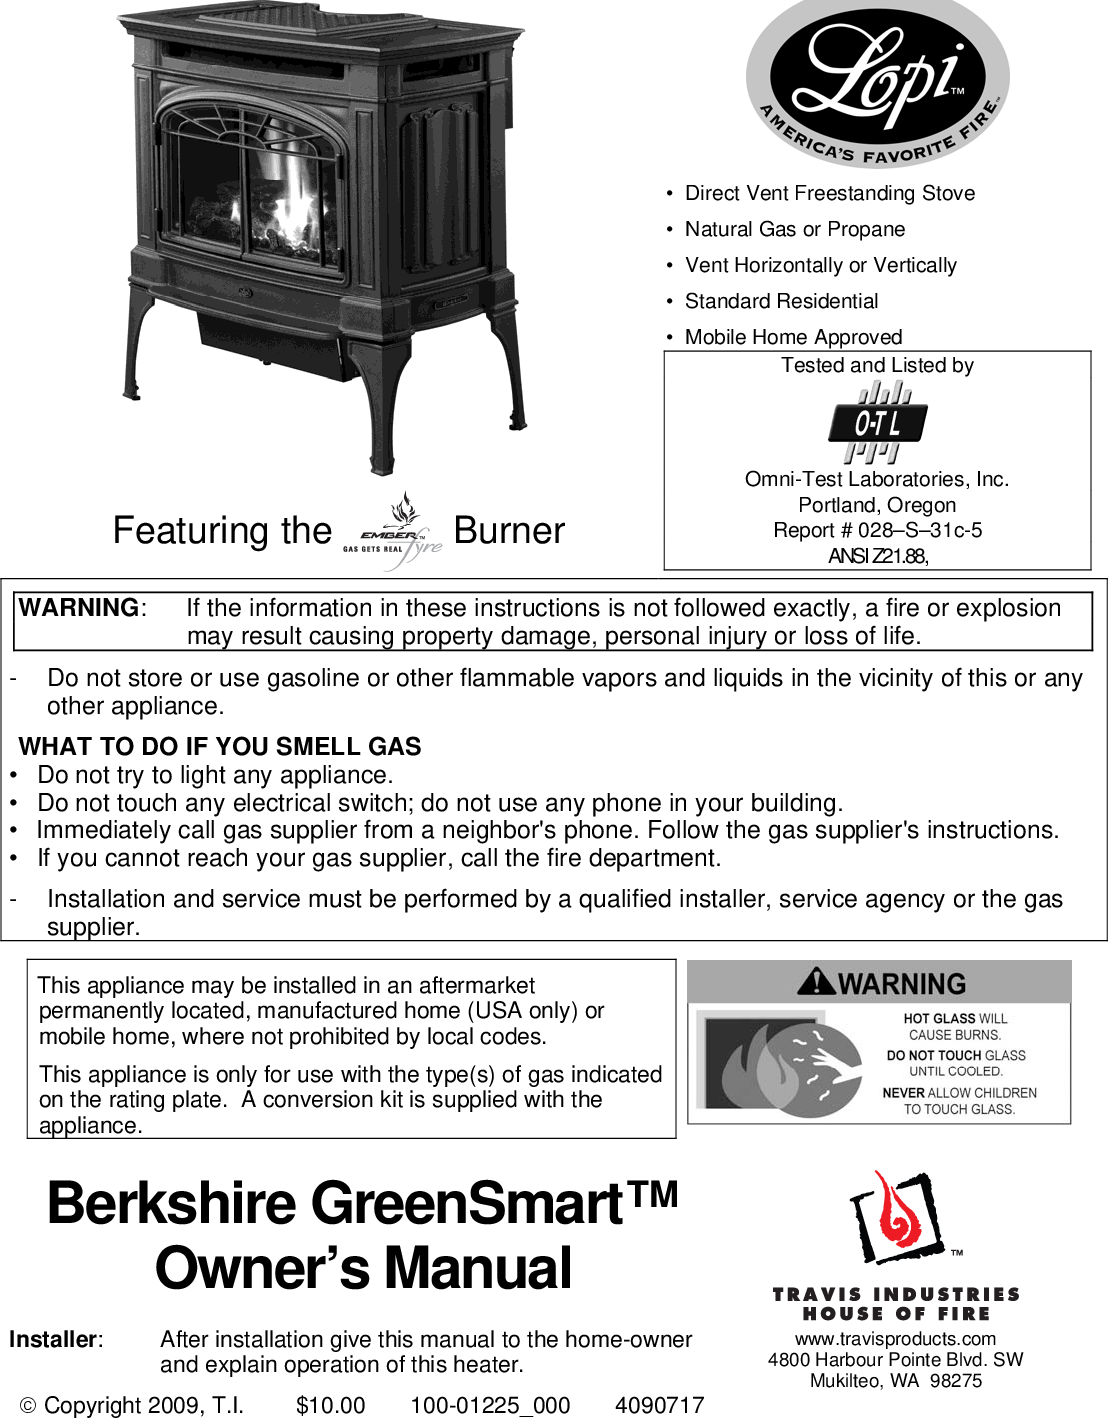 Weber Burner Berkshire GS Manual User To The 901b2b56 f1e1 4791 a8fe on